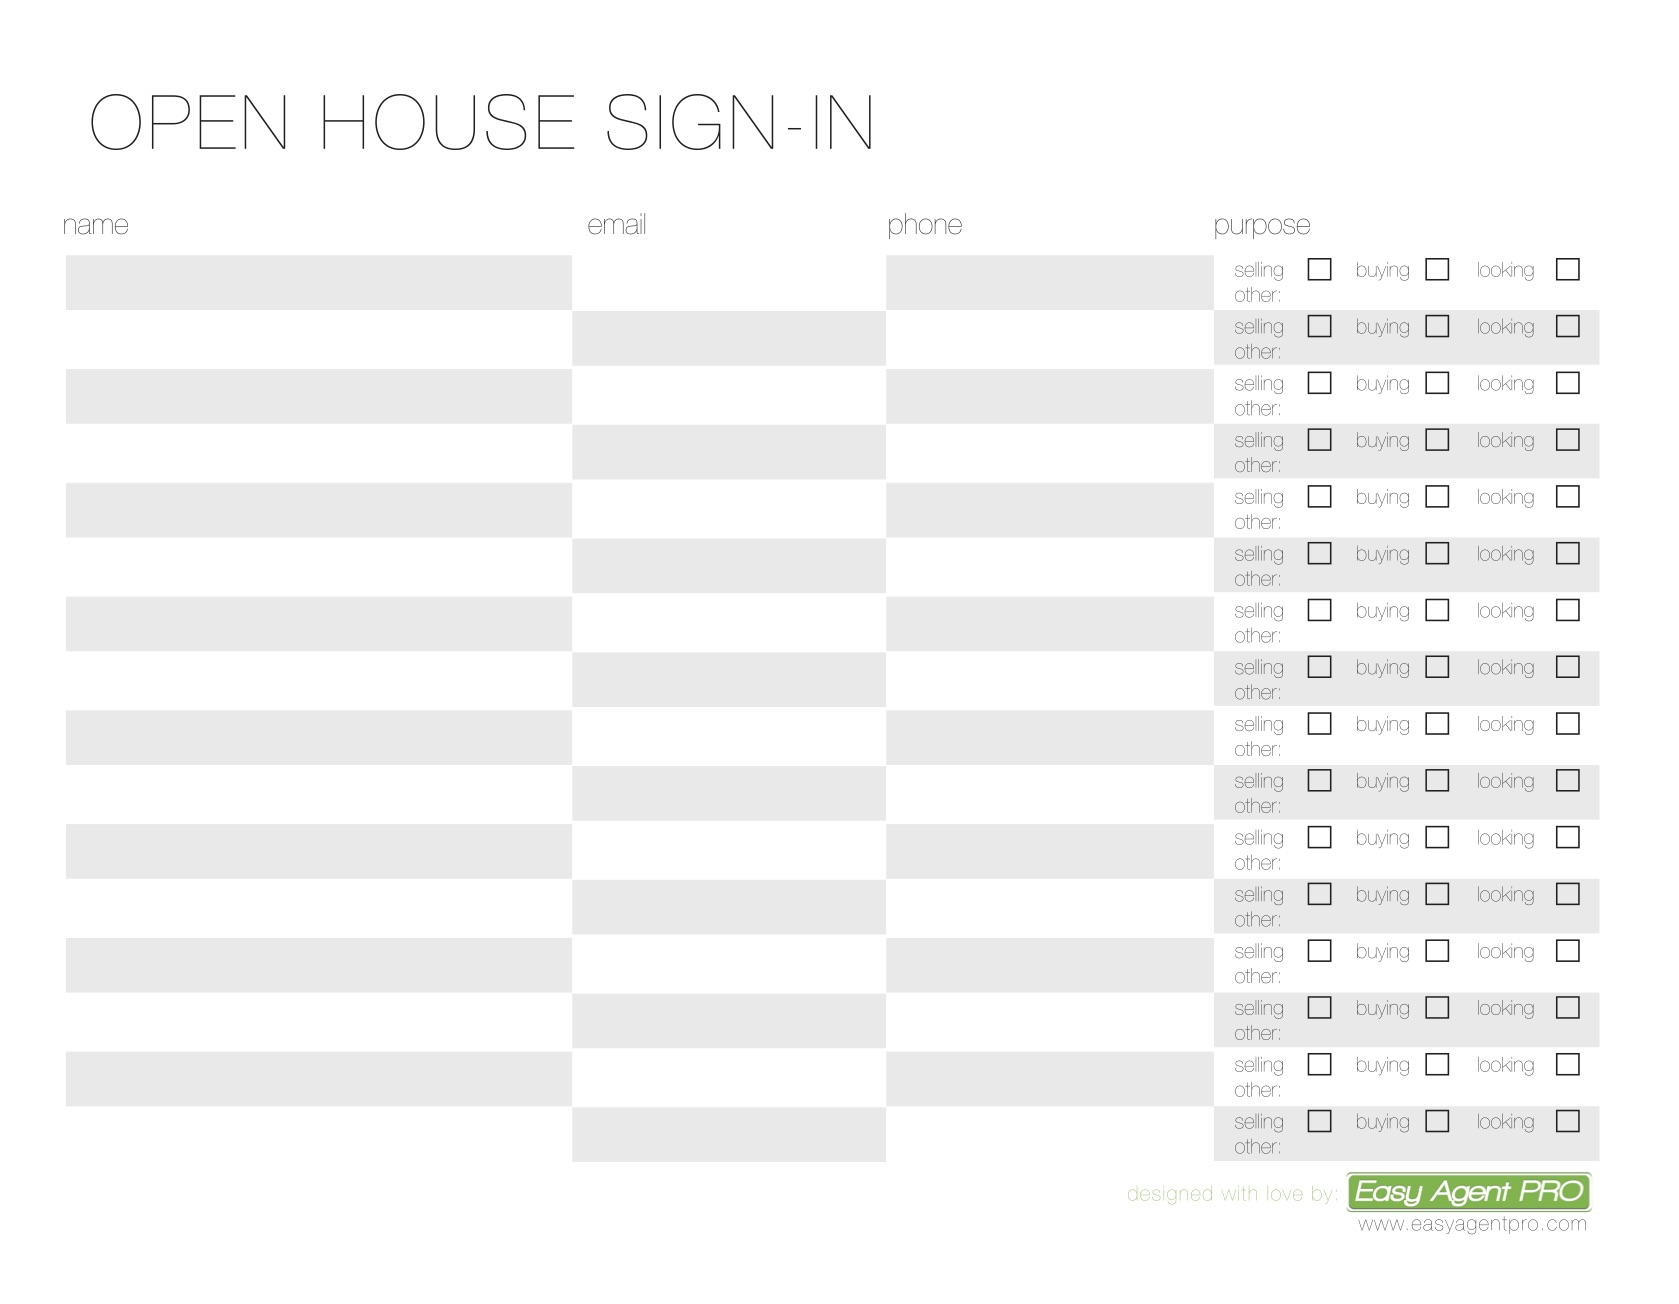 3 Free Real Estate Open House Sign in Sheet Templates